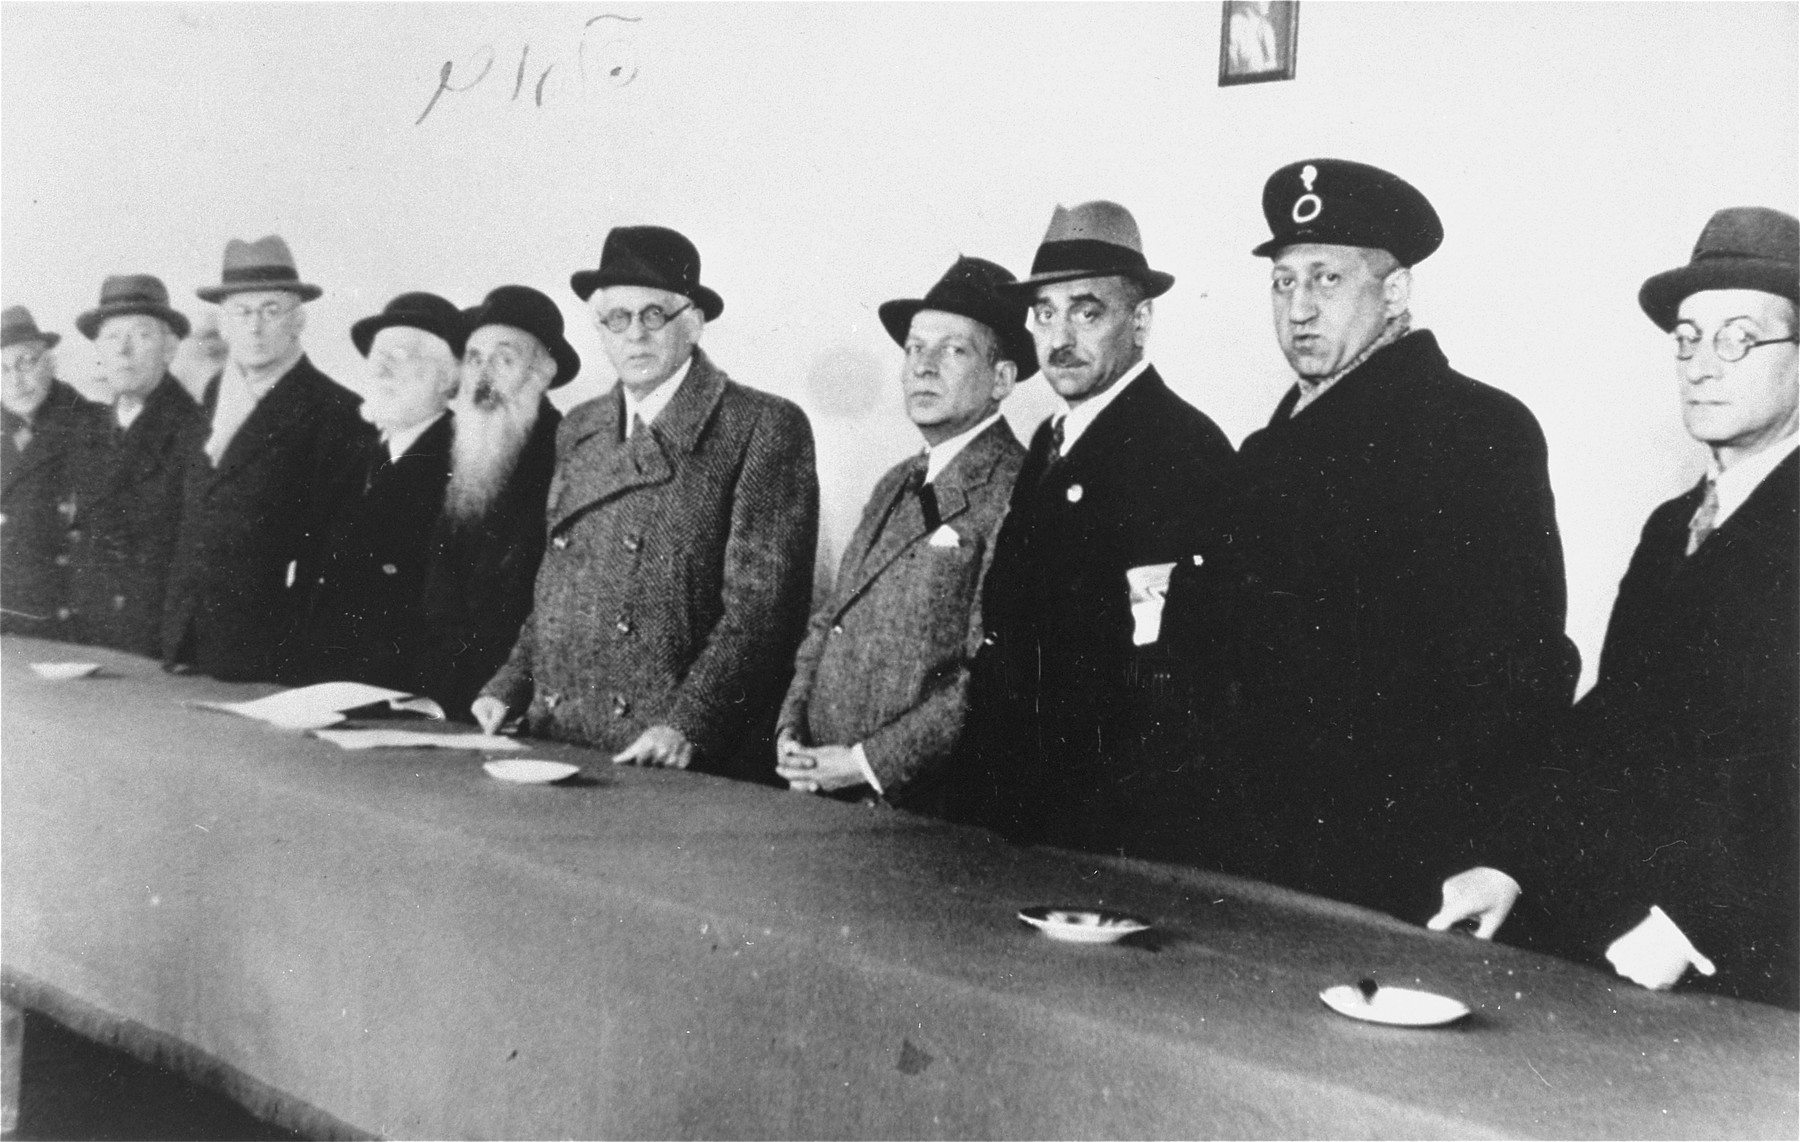 Members of the Lodz ghetto Jewish council stand behind a long table.  Among those pictured are Mordechai Chaim Rumkowski (fifth from the right), Rabbi Yosif Fajner (sixth from the right), Leon Rozenblat (third from the right), Dr. Leon Szykier (second from the right) and Max Szczesliwy.